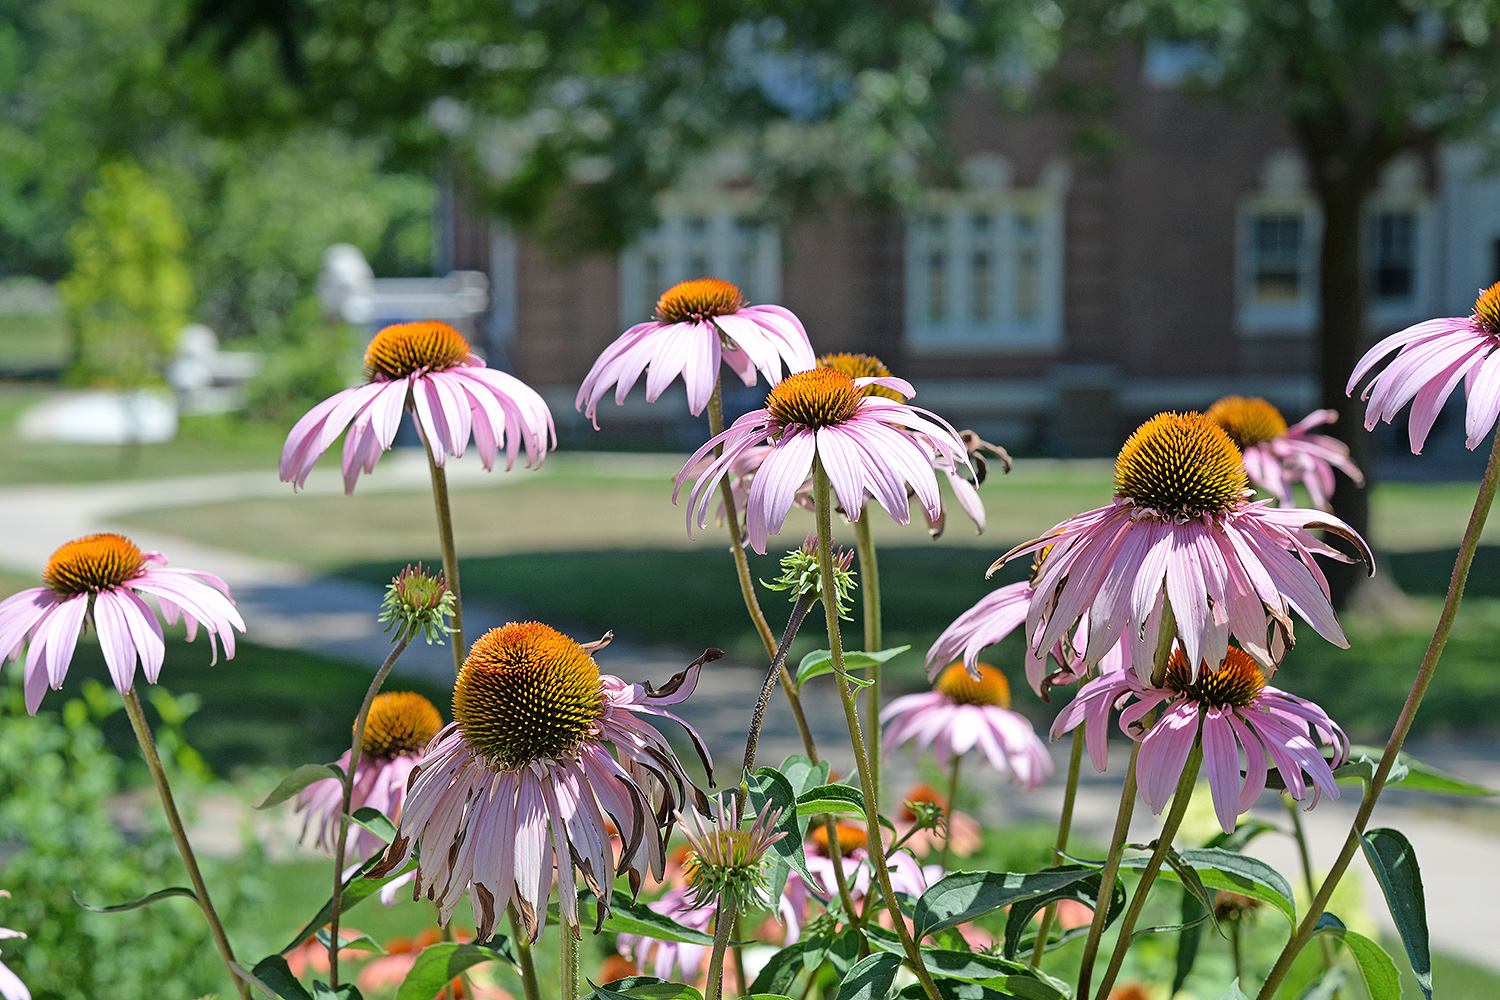 Purple coneflowers overlook Alpha Delta Pi.